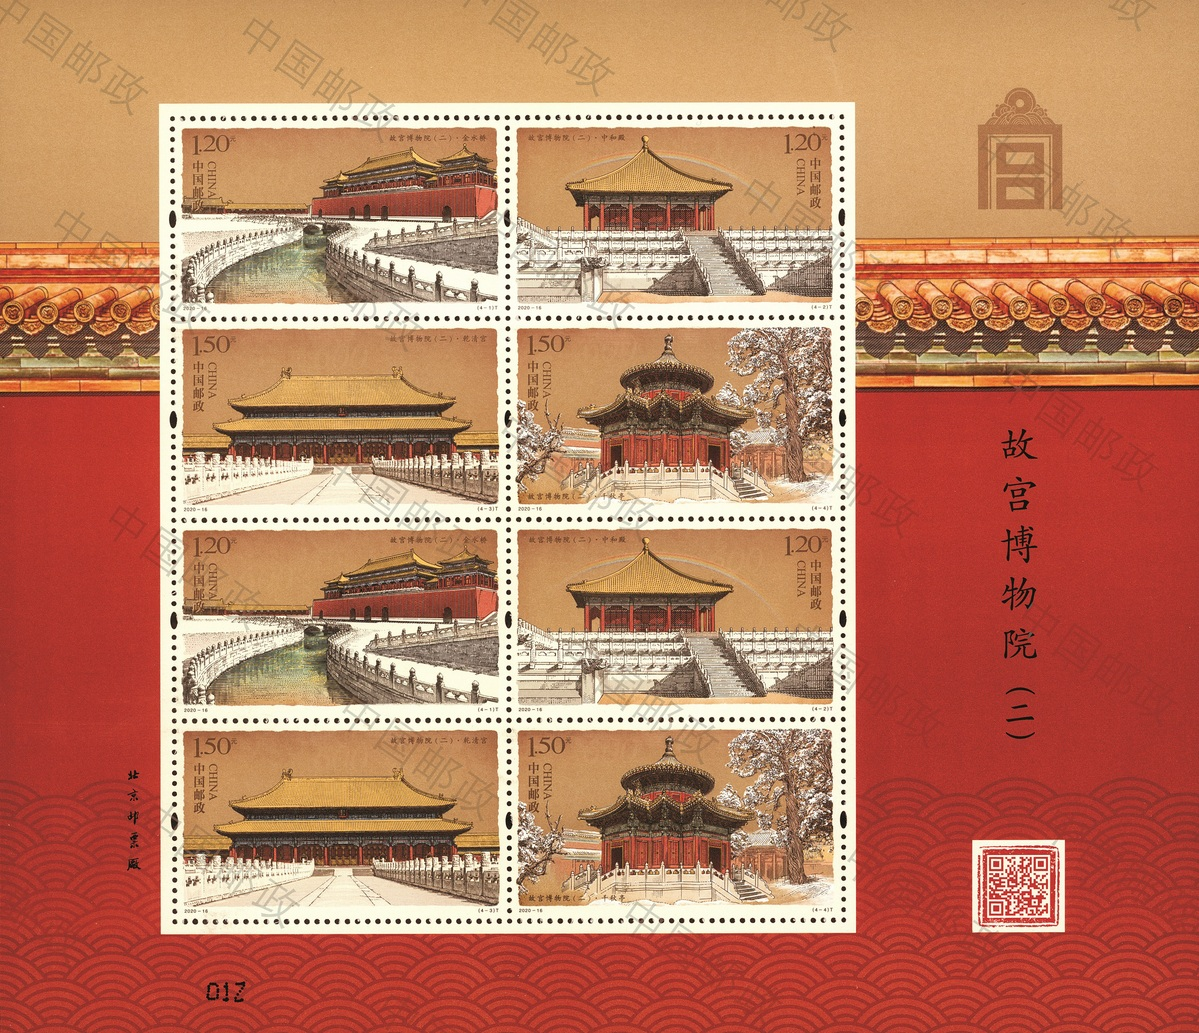 New stamps for Forbidden City